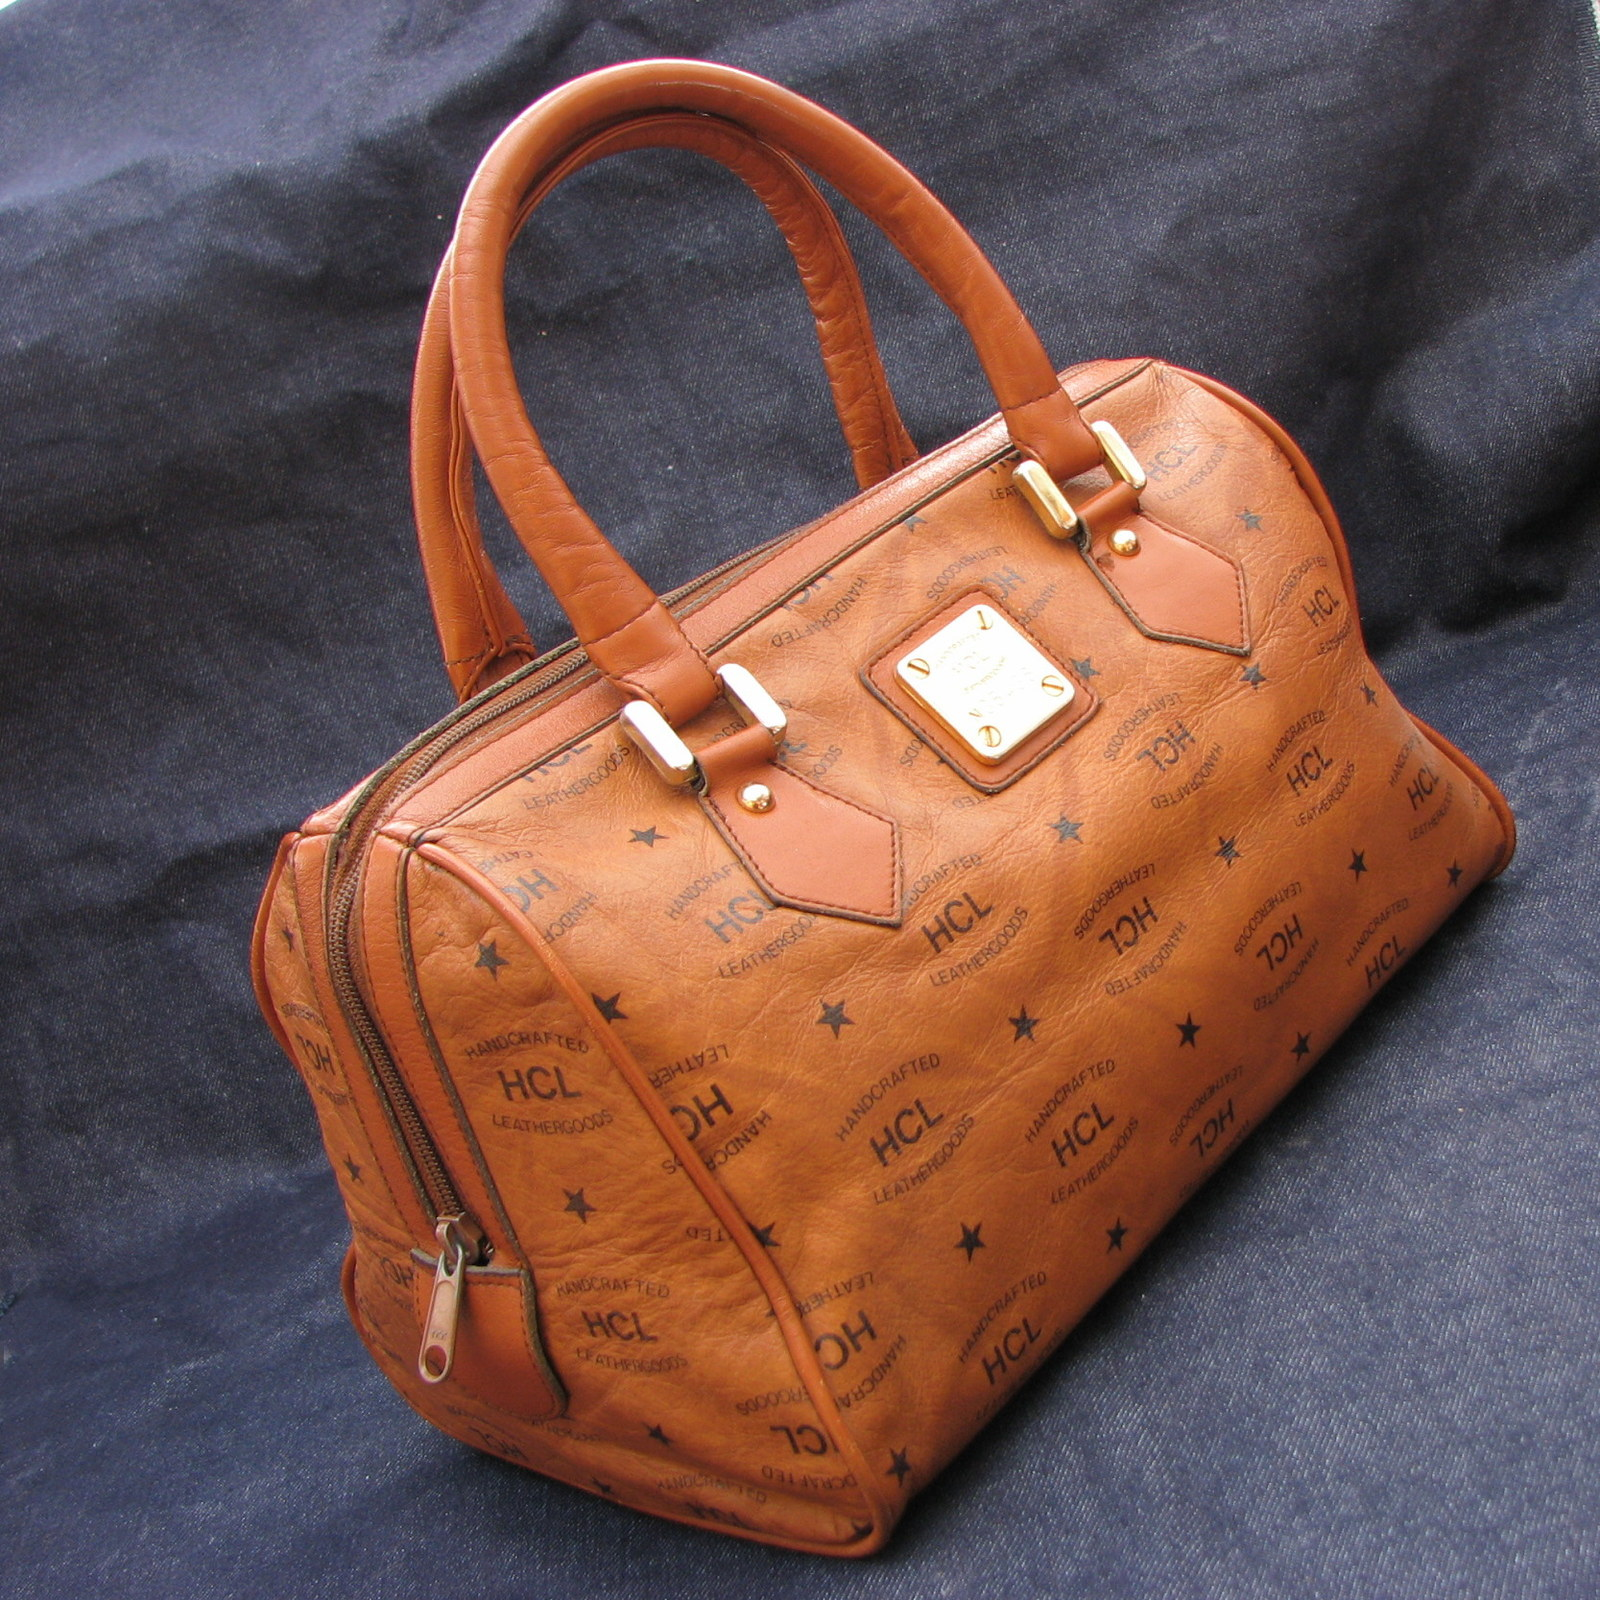 Hcl handcrafted leather goods - Luxusn Ko En Kabelka Hcl Handcrafted Leathergood